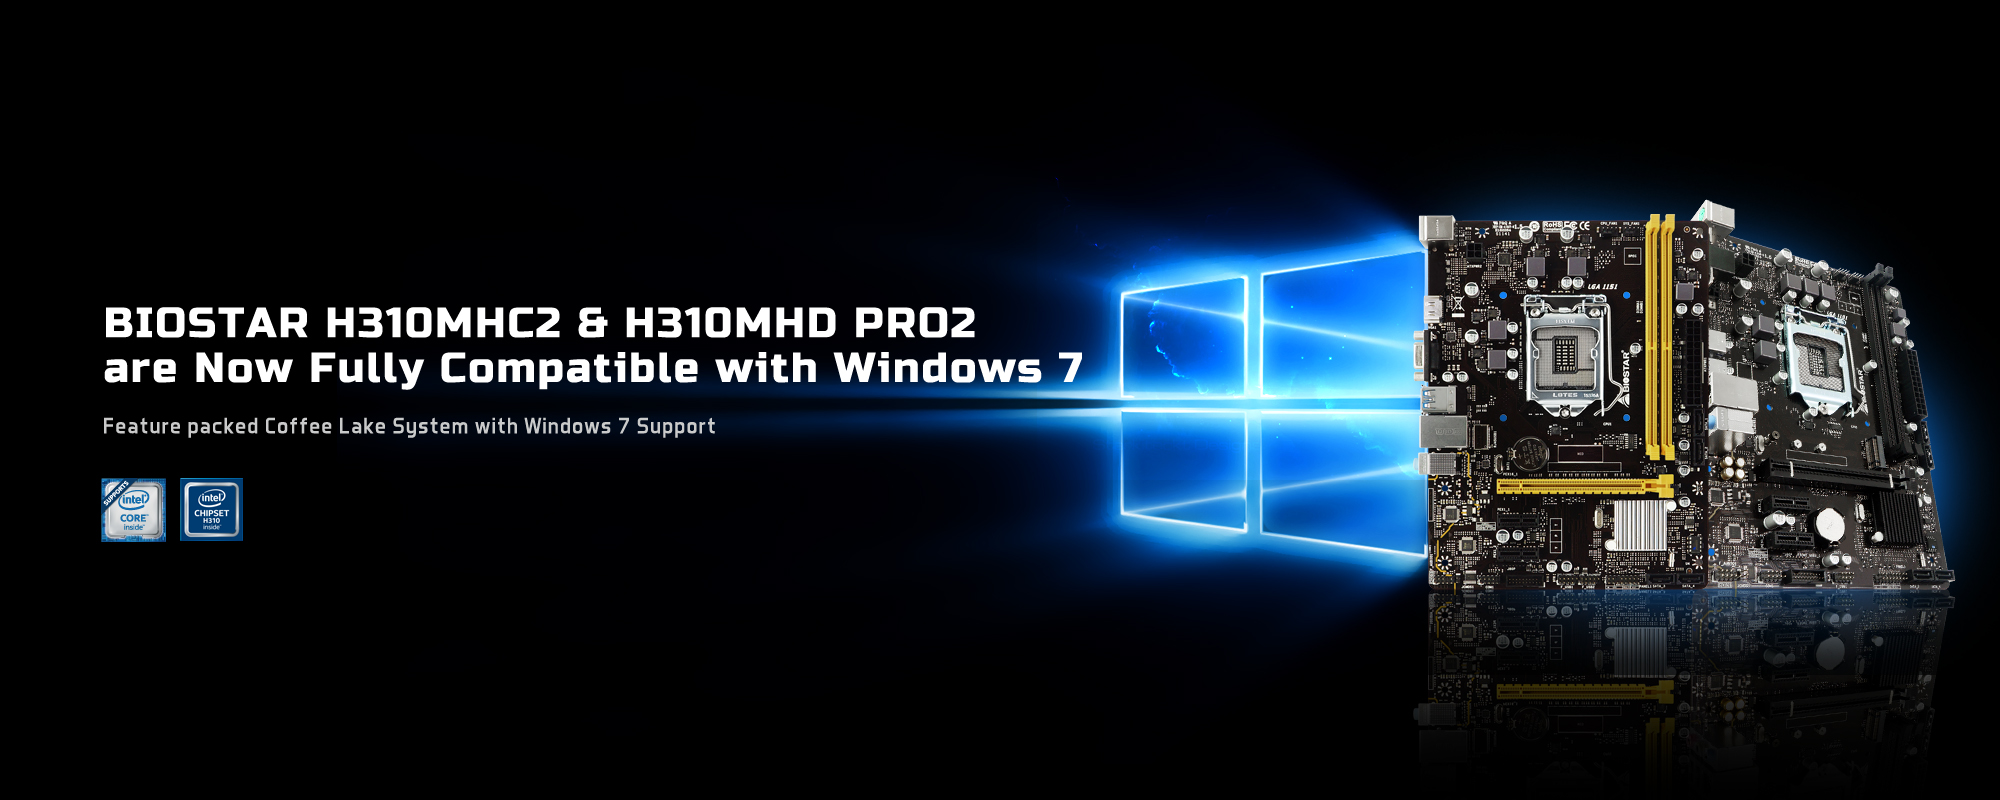 Windows 7 on H310MHC2 and H310MHD PRO2 motherboards